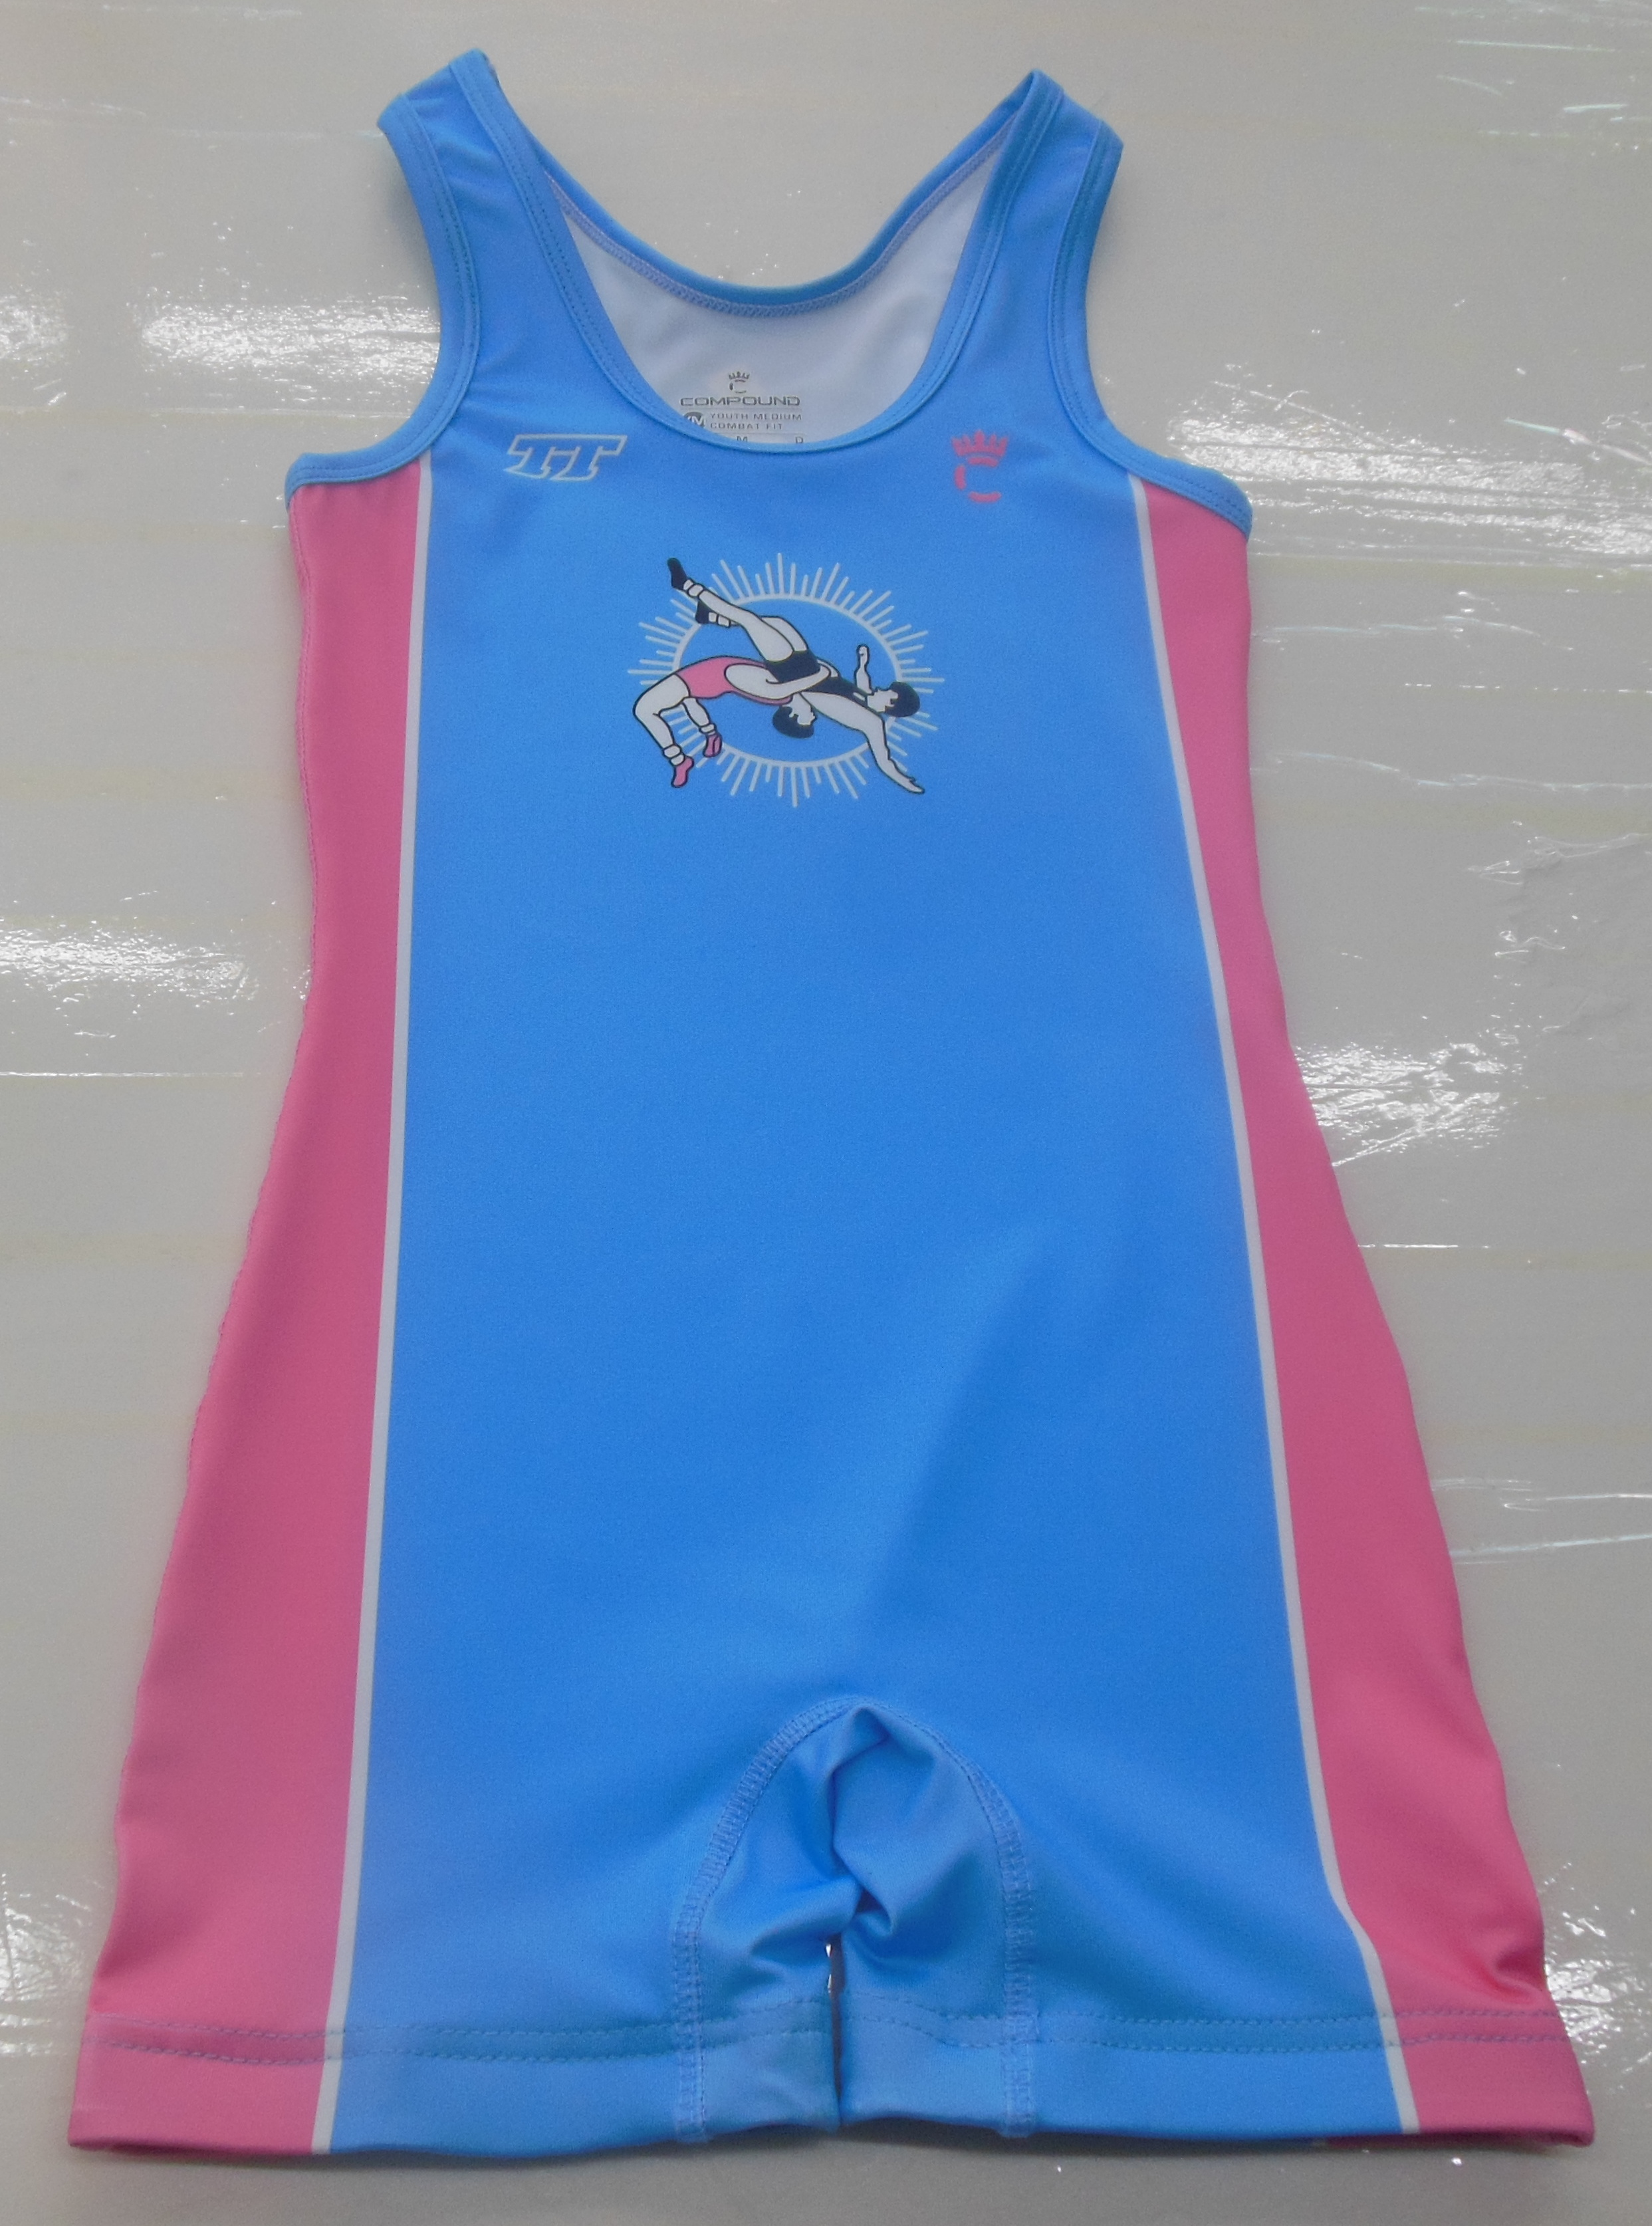 Red Blue Black and White Baseball Uniforms, Kids Swimming Suits